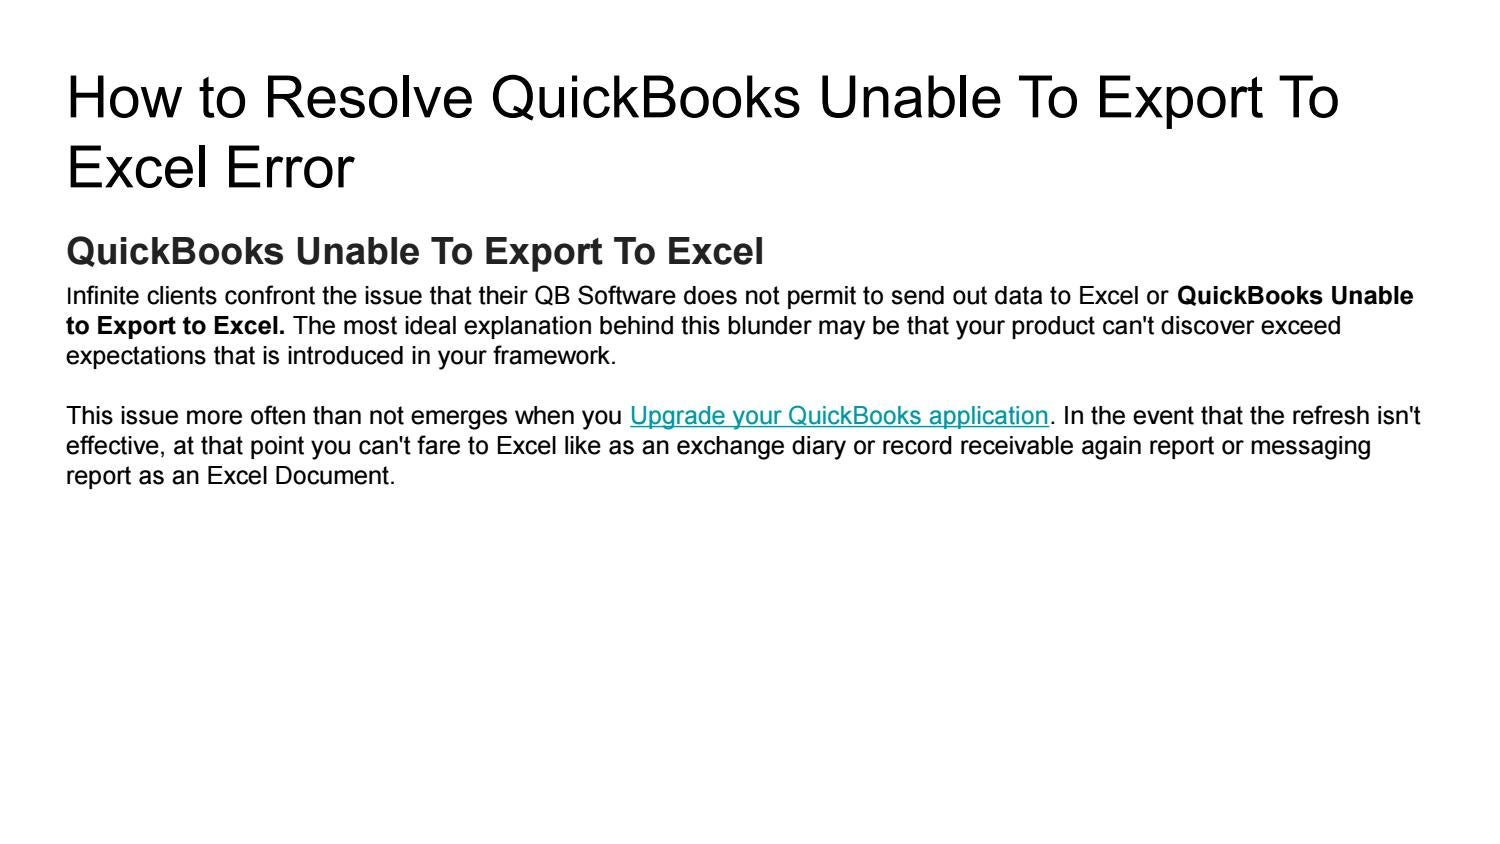 How to resolve quickbooks unable to export to excel error by